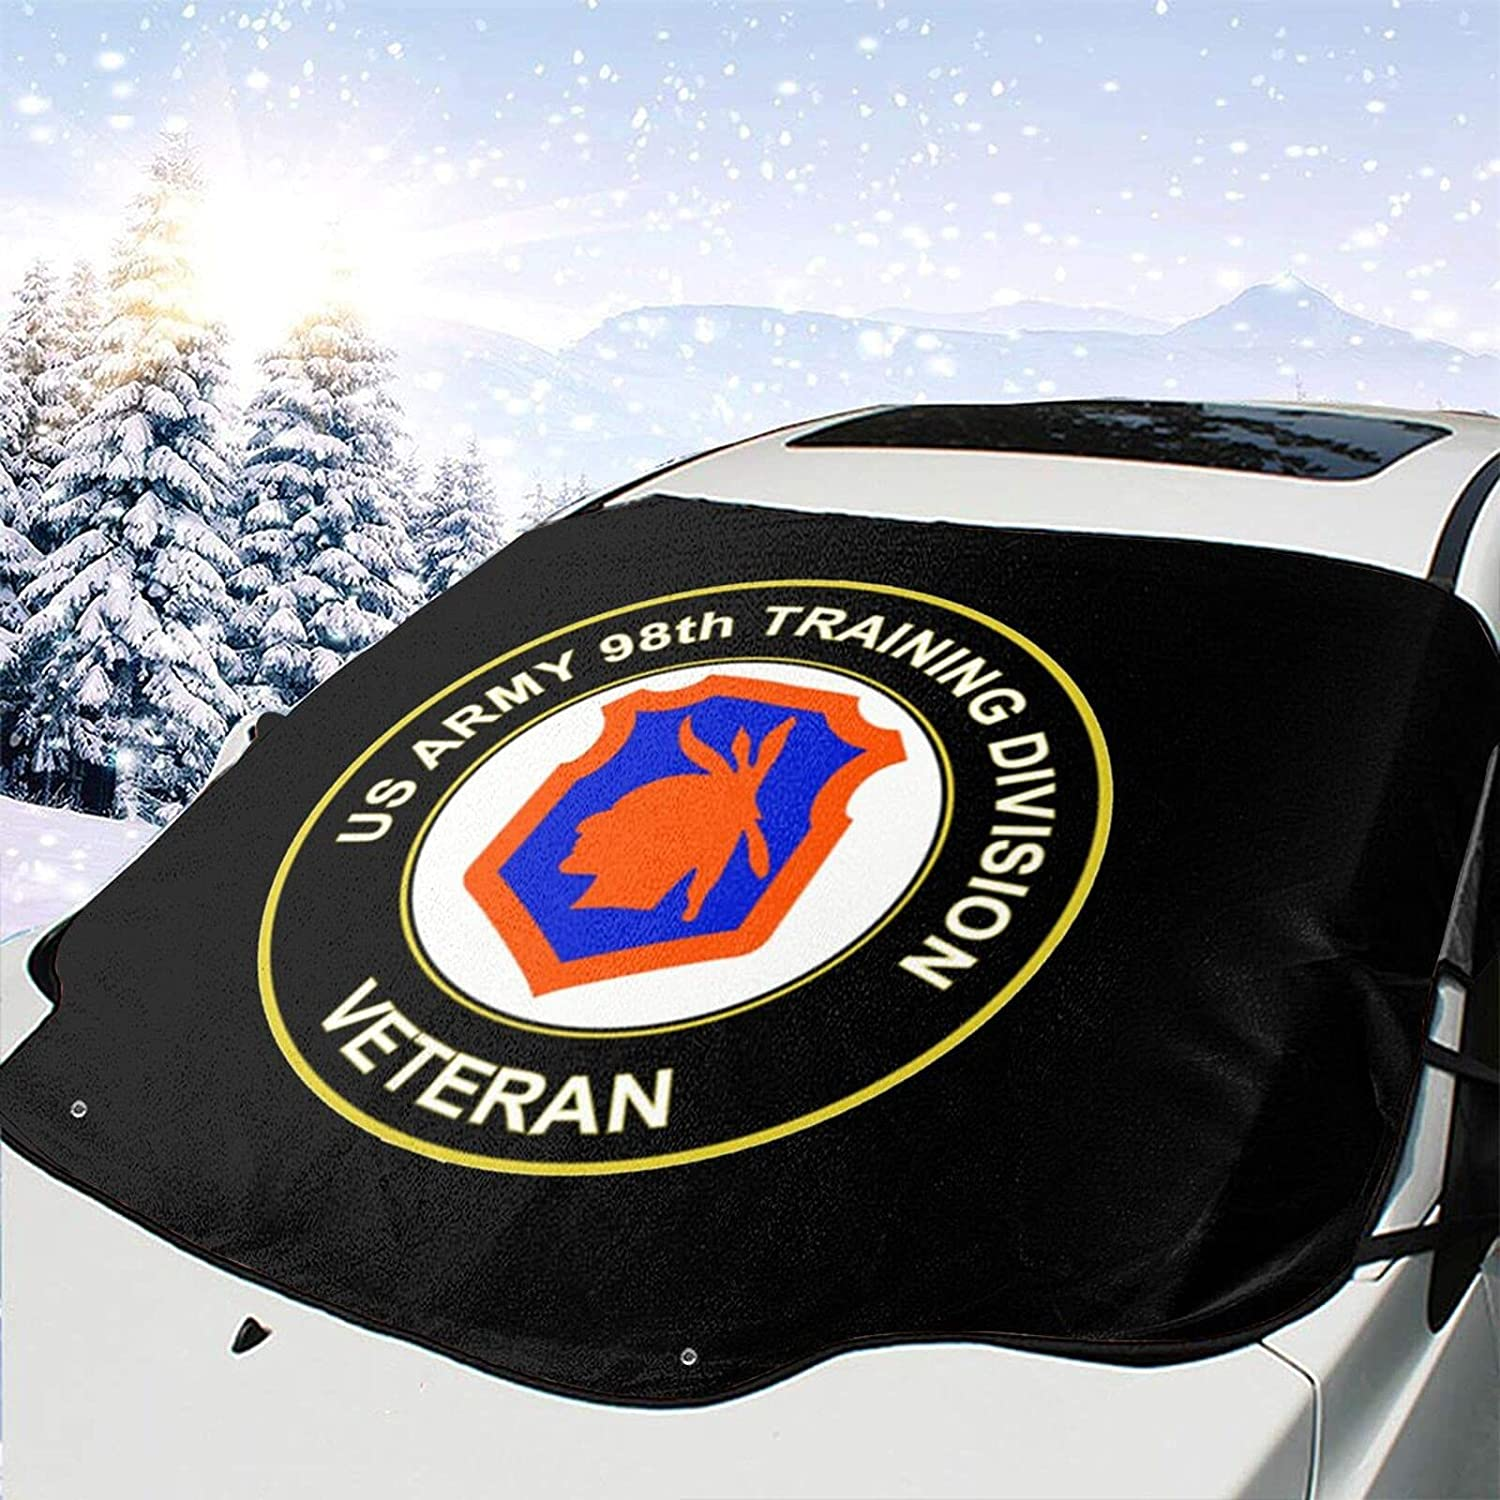 Us Army Veteran 98th Training Division Windshield Snow Indefinitely Ice Cover Elegant